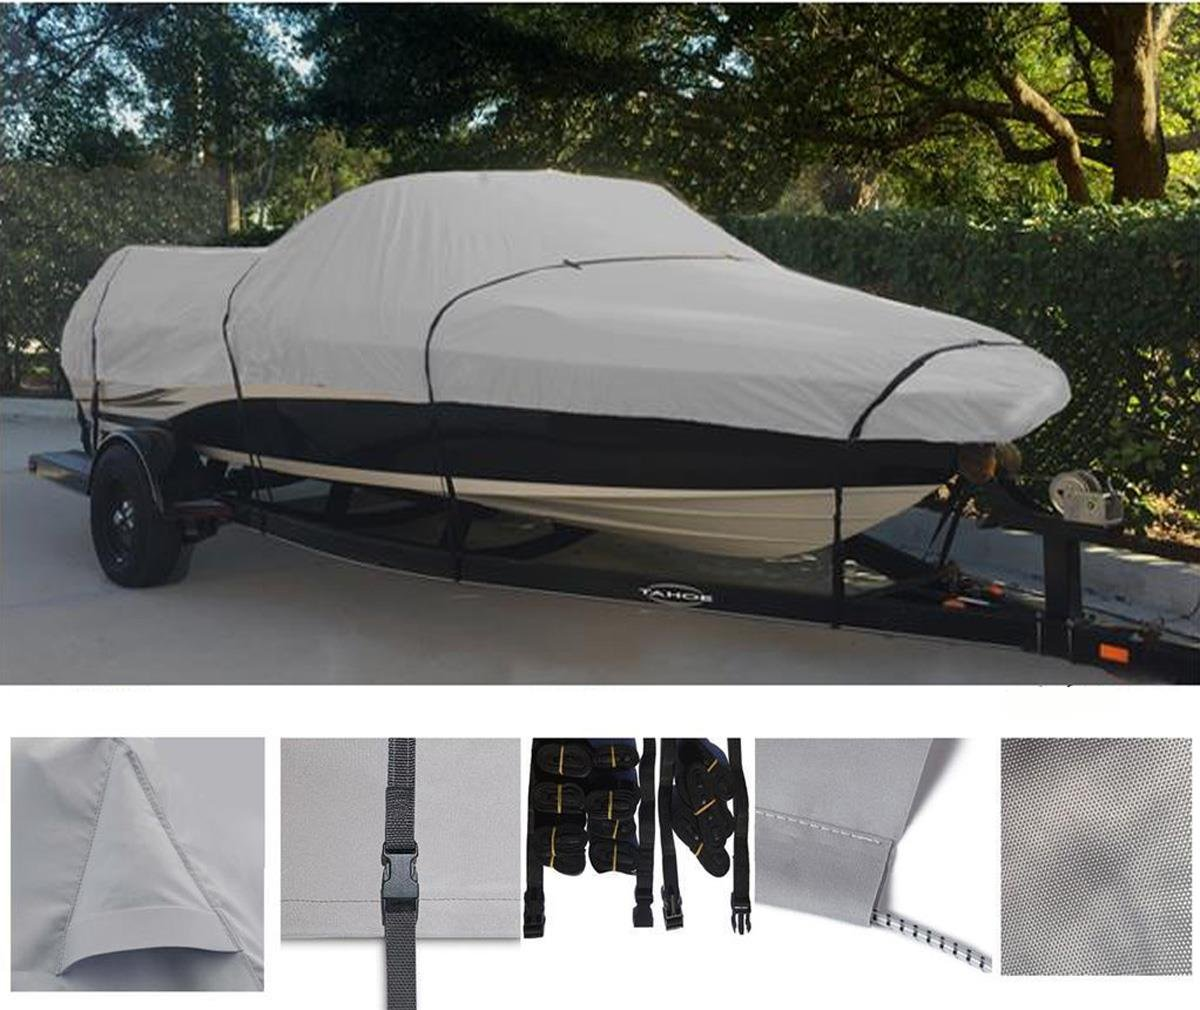 GREY, STORAGE, TRAVEL, MOORING BOAT COVER FOR KLAMATH 15 ADVANTAGE/SS/S 1994-2011 by SBU